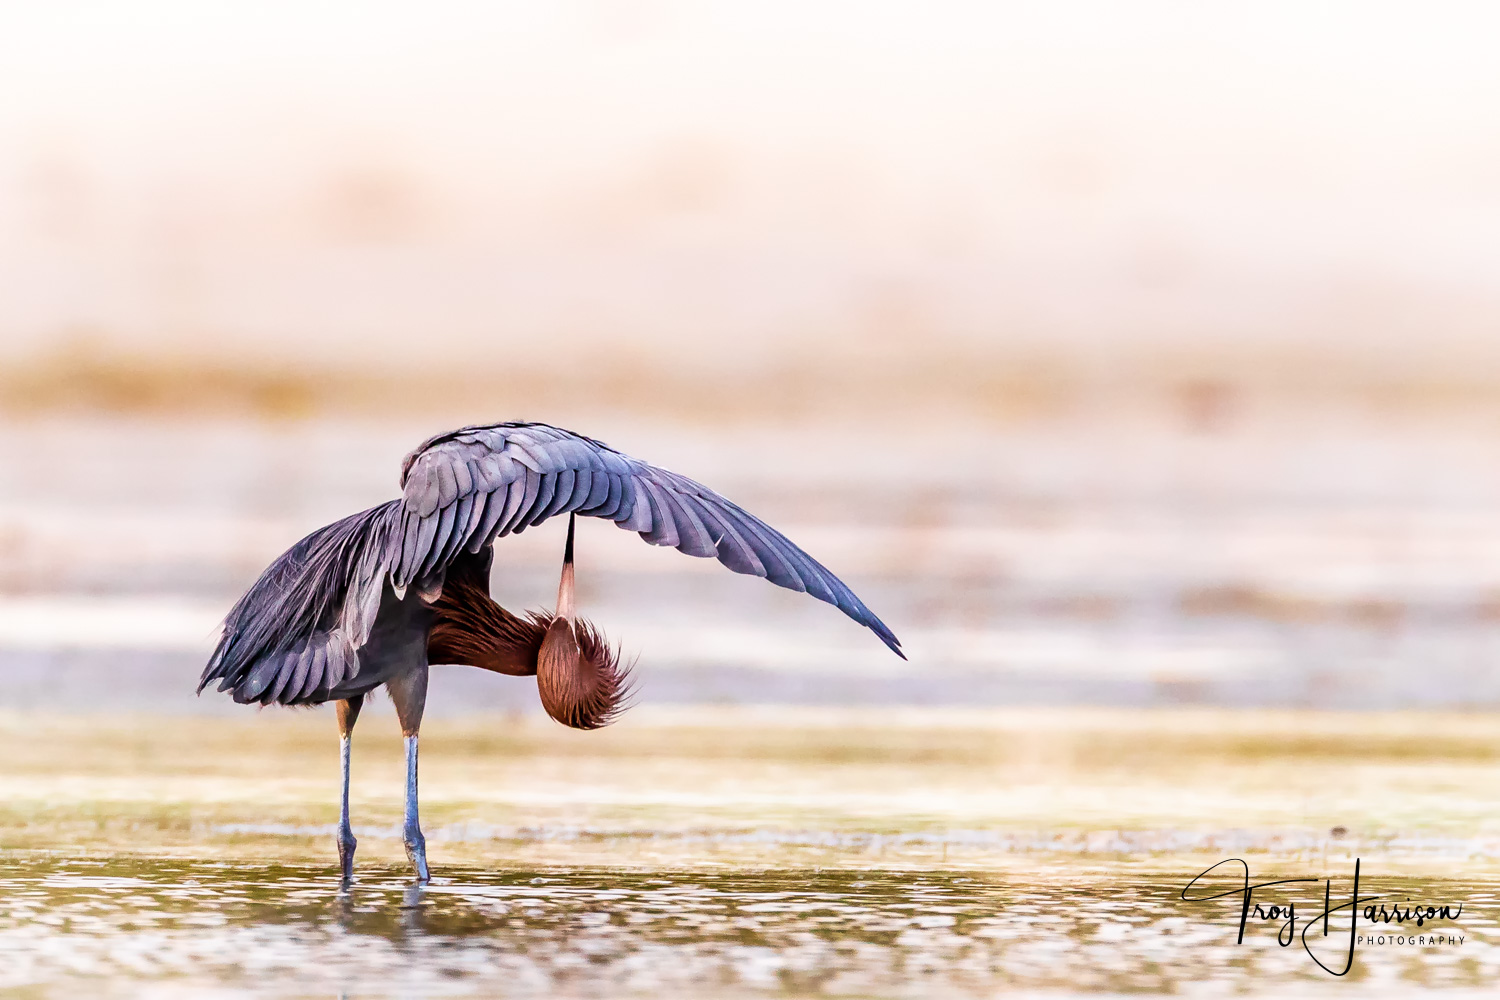 1 - Reddish Egret, Everglades, March 2019, img 484.jpg